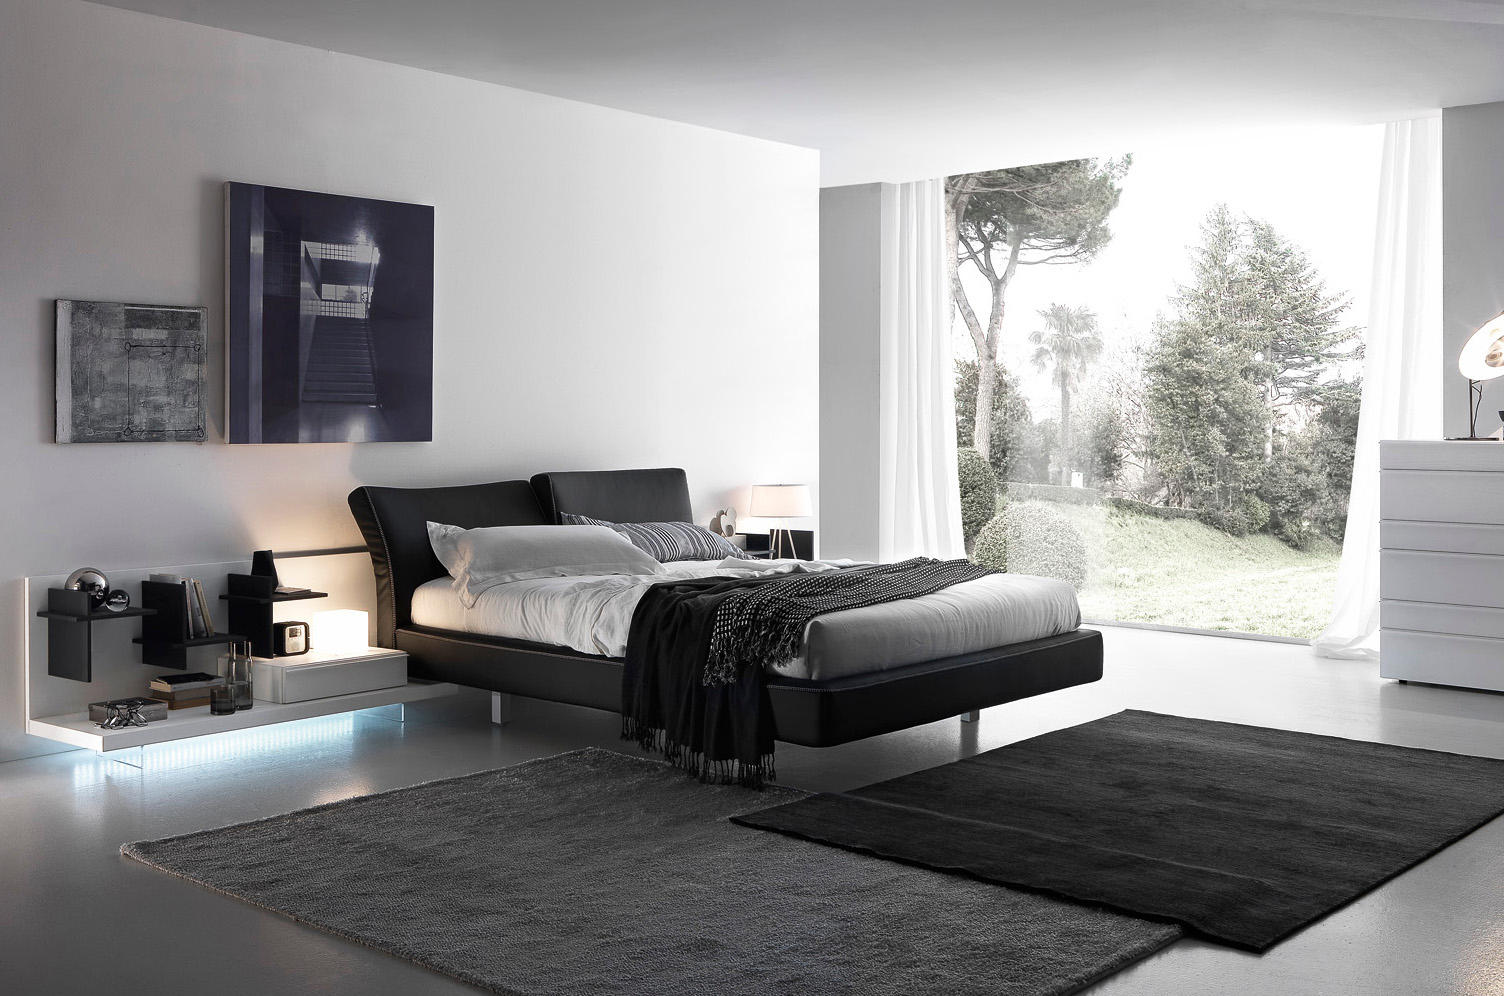 REFLEX_A - Double beds from Presotto | Architonic